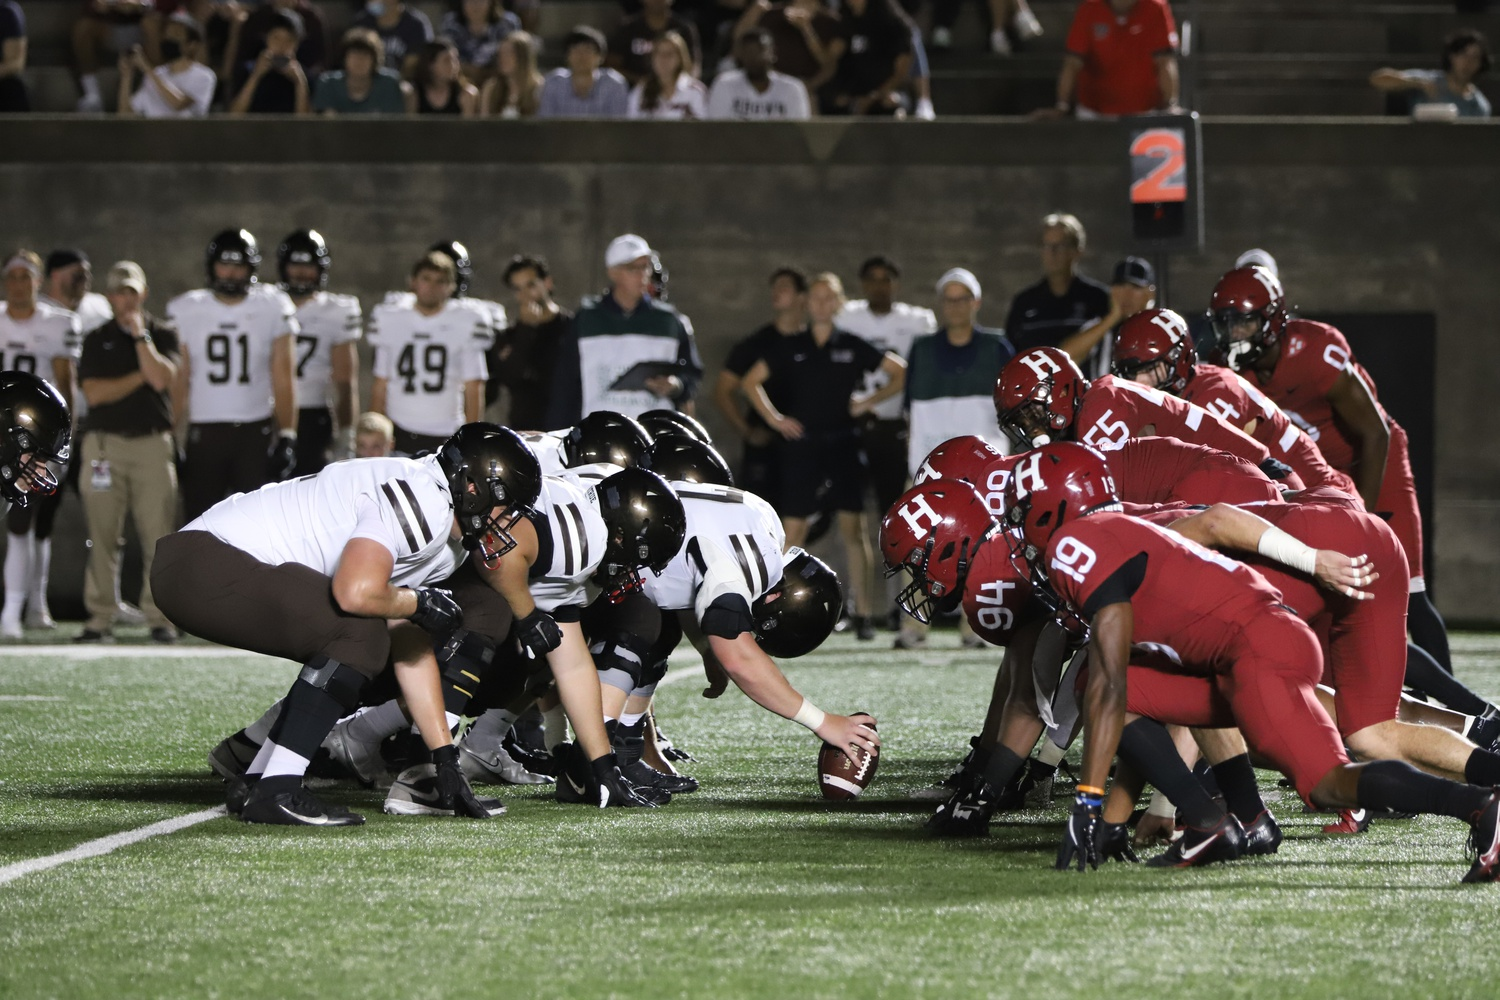 The Crimson and Bears line up for a second-down snap in front of a packed house at Harvard Stadium. The Harvard defense would pitch a shutout in the first half en route to a 49-17 victory.